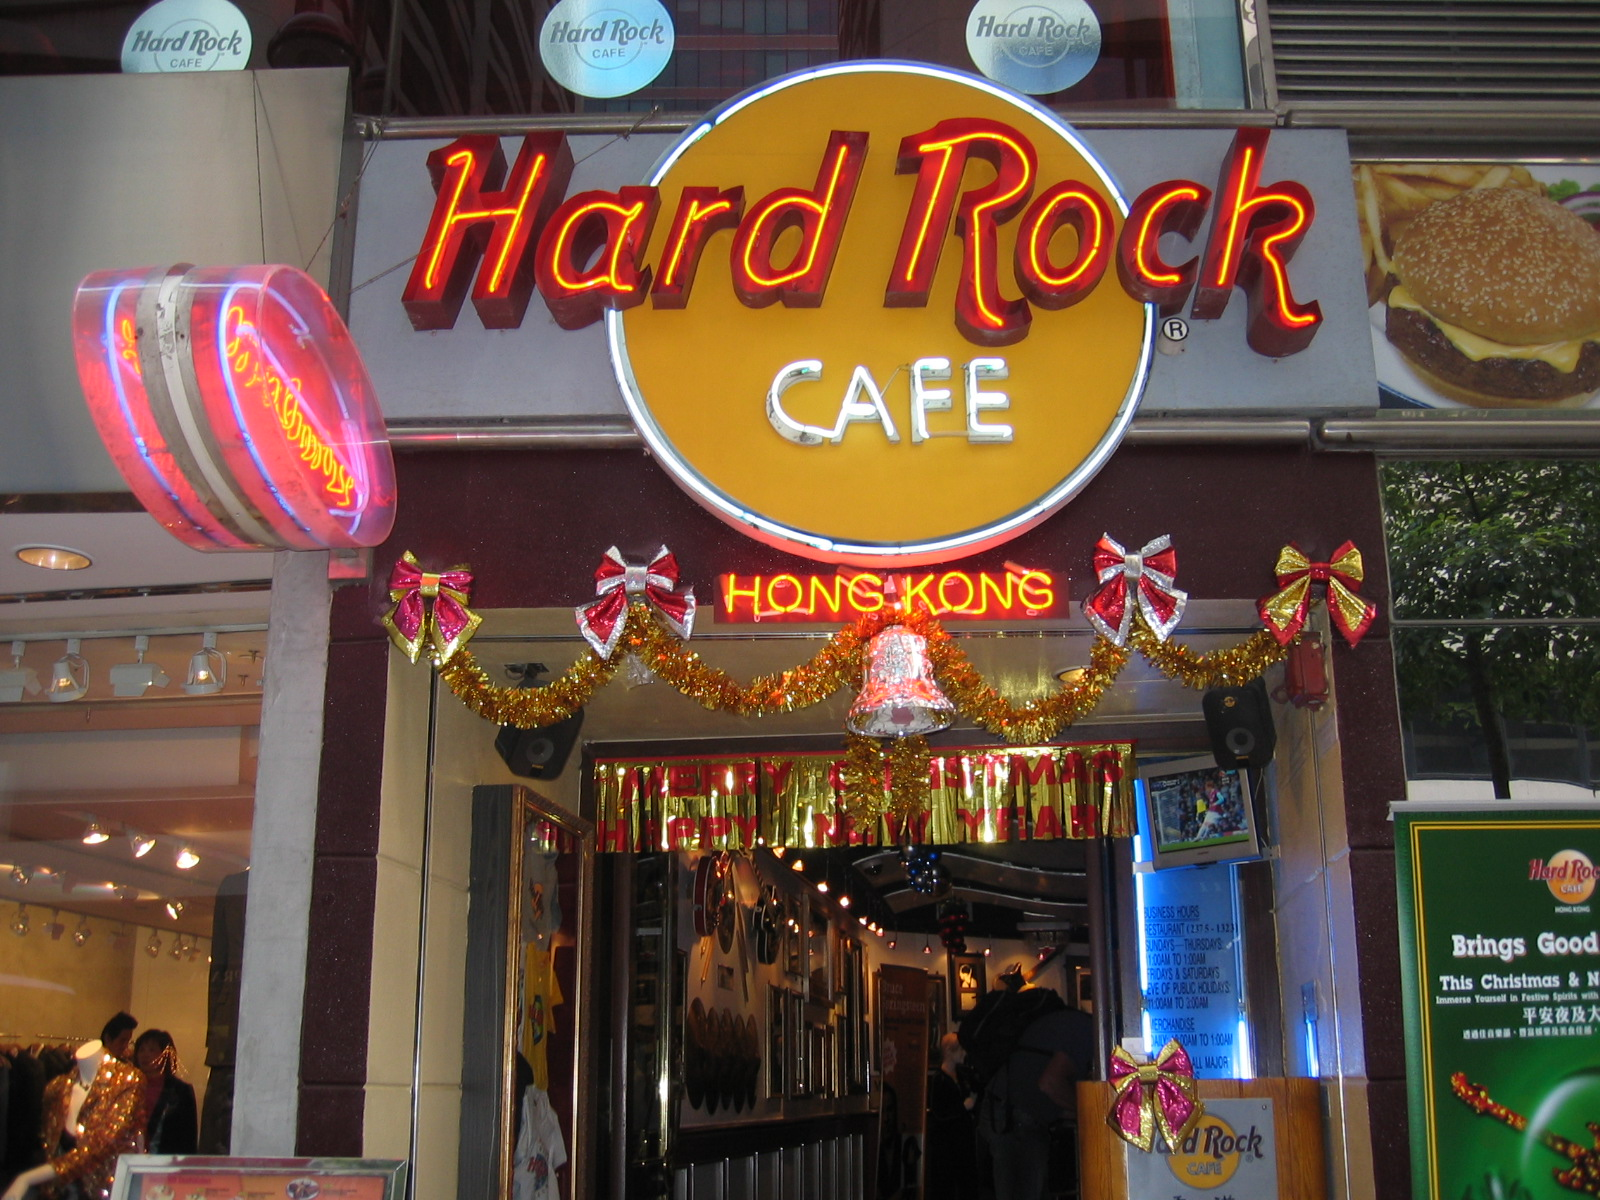 Hard Rock Cafe Food Poisoning